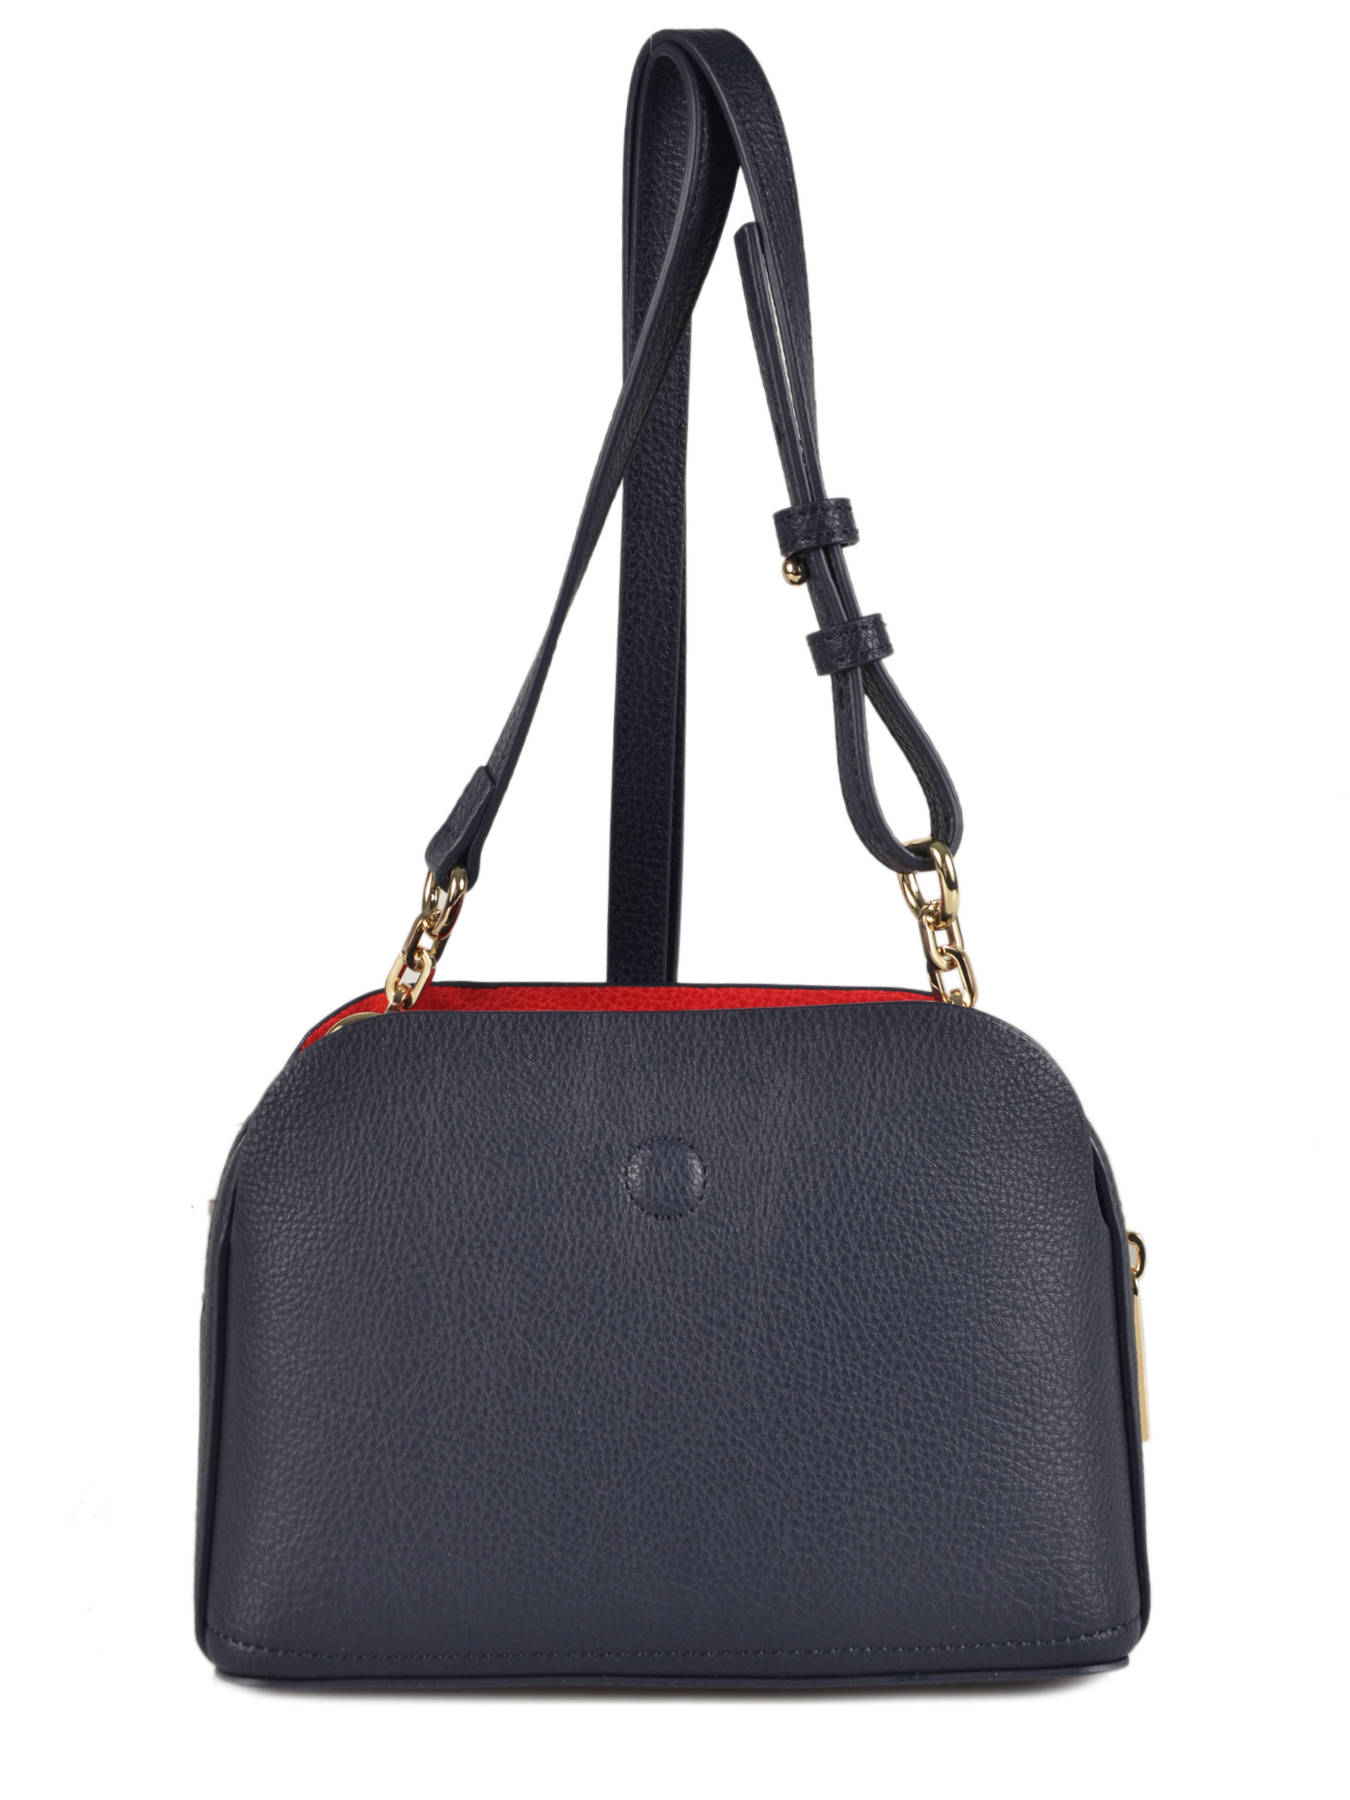 8469ccc9dd9 ... Sac Bandoulière Th Core Tommy hilfiger Noir th core AW06469 vue  secondaire 3 ...